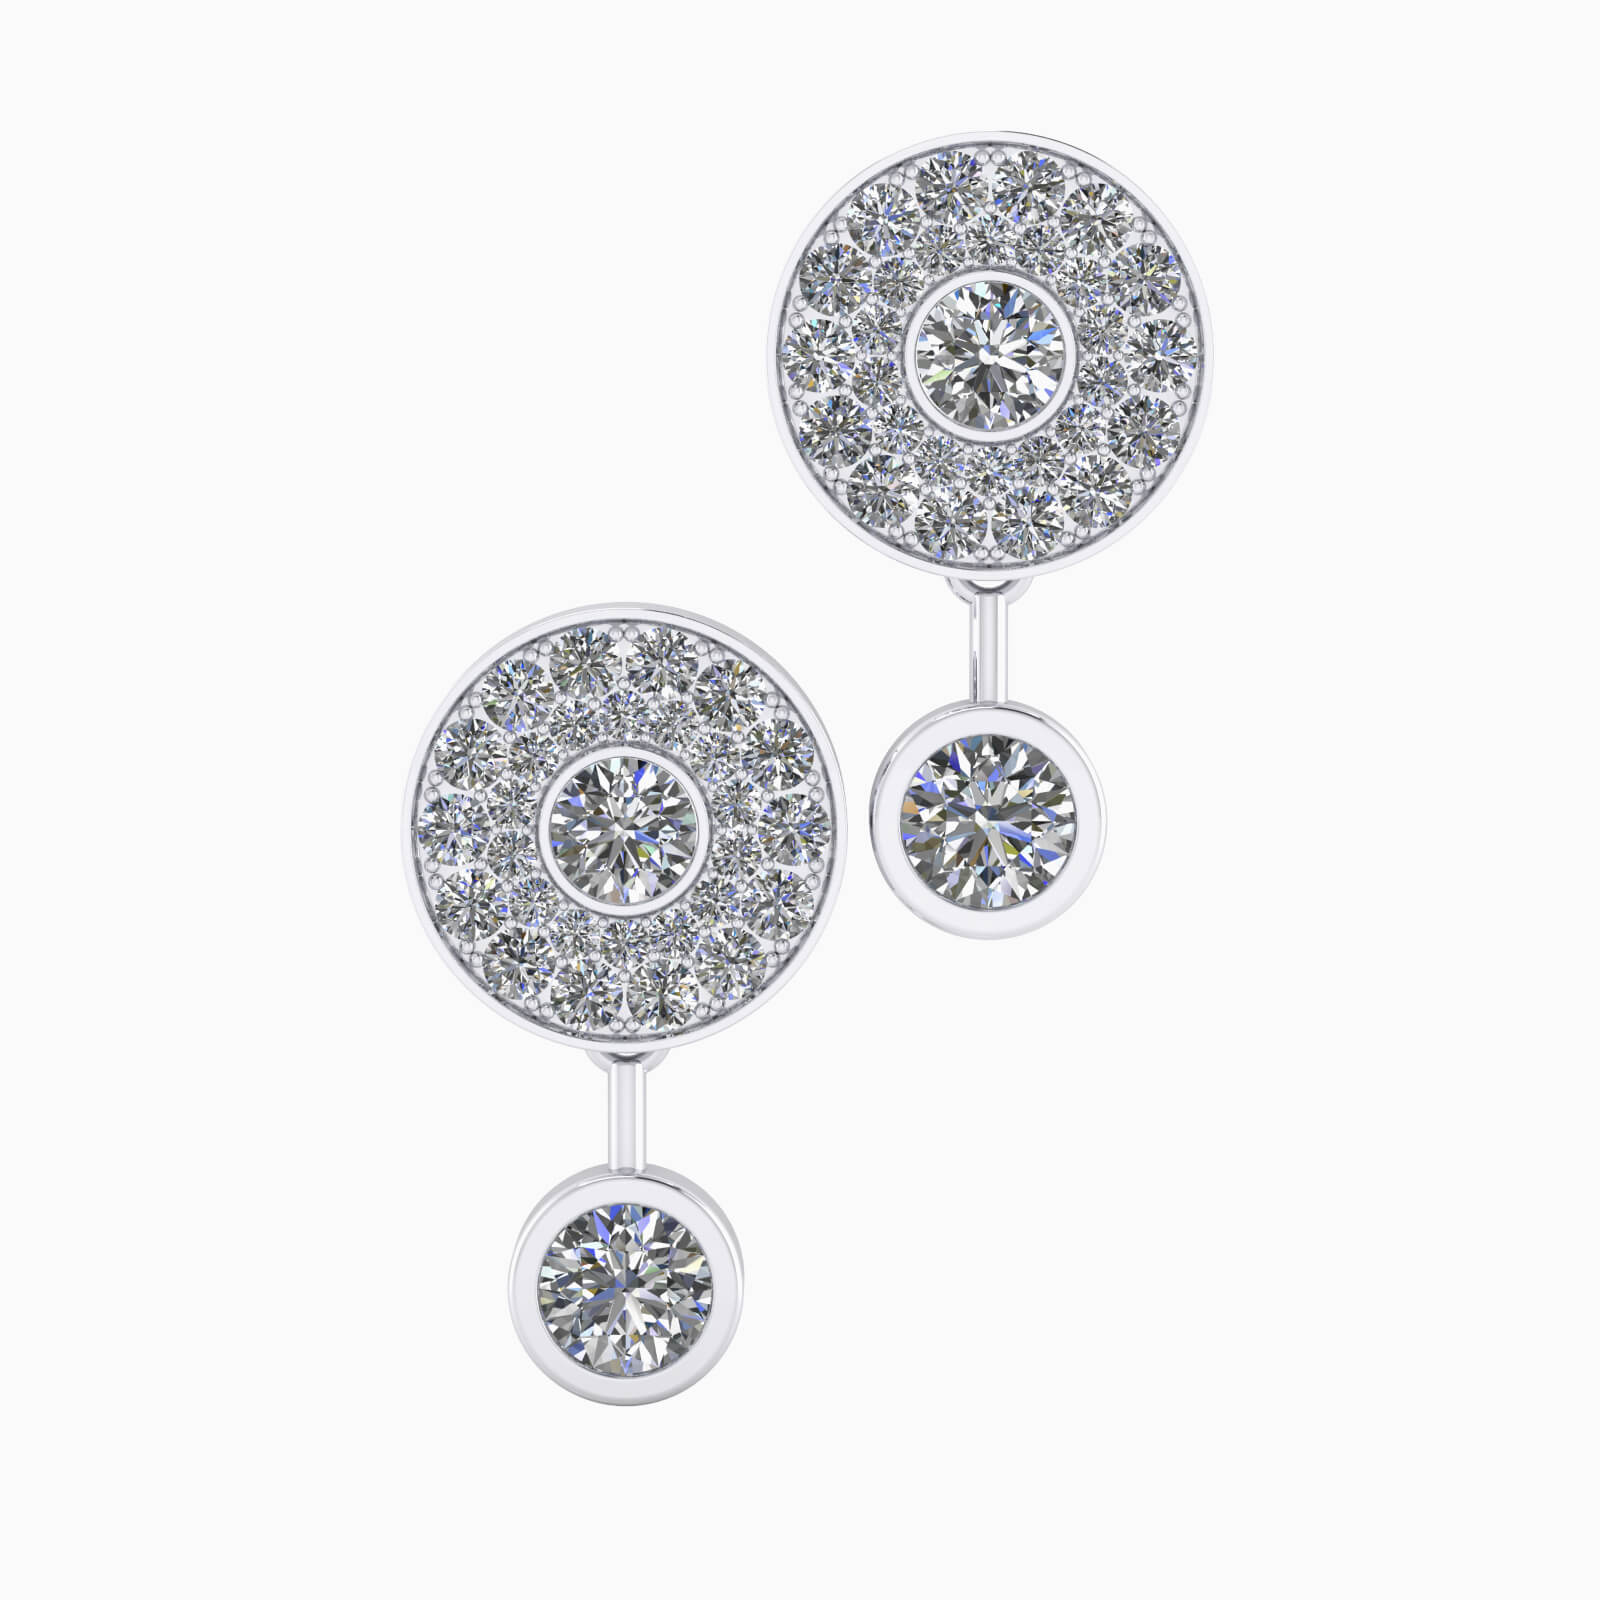 Earrings 18k white gold with 50 brilliant cut diamond